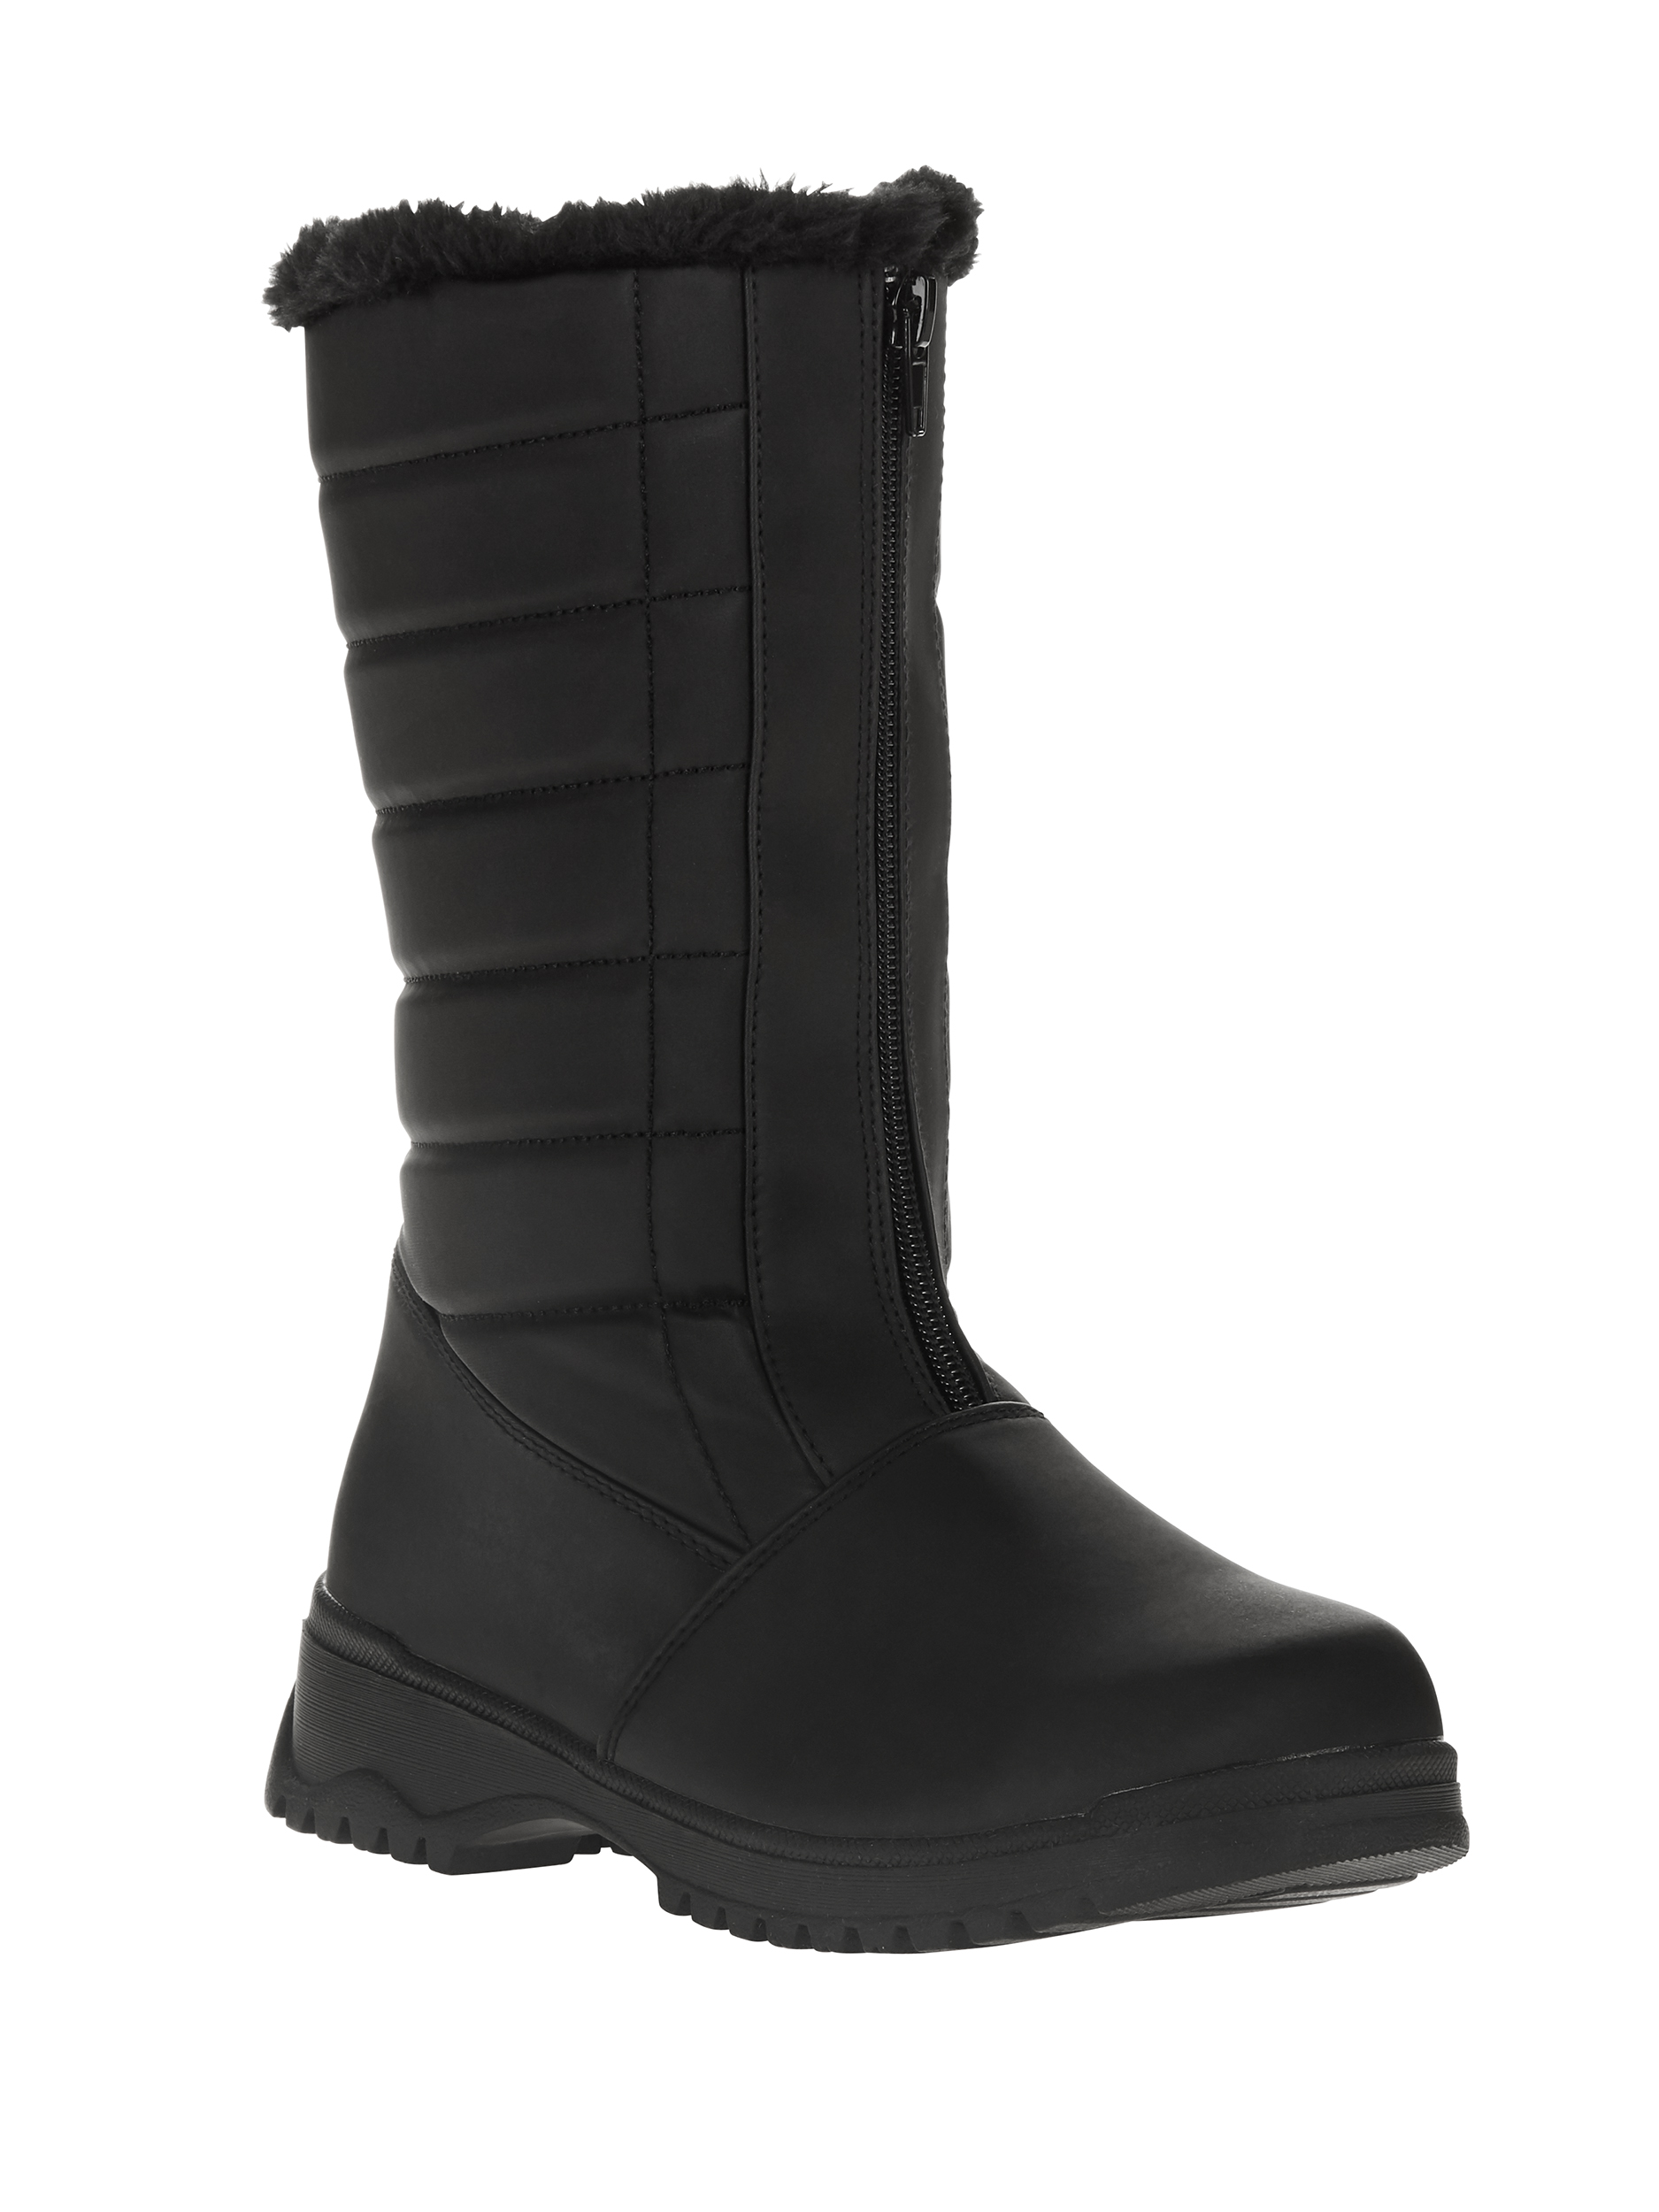 Tundra Women's Christy Winter Boot